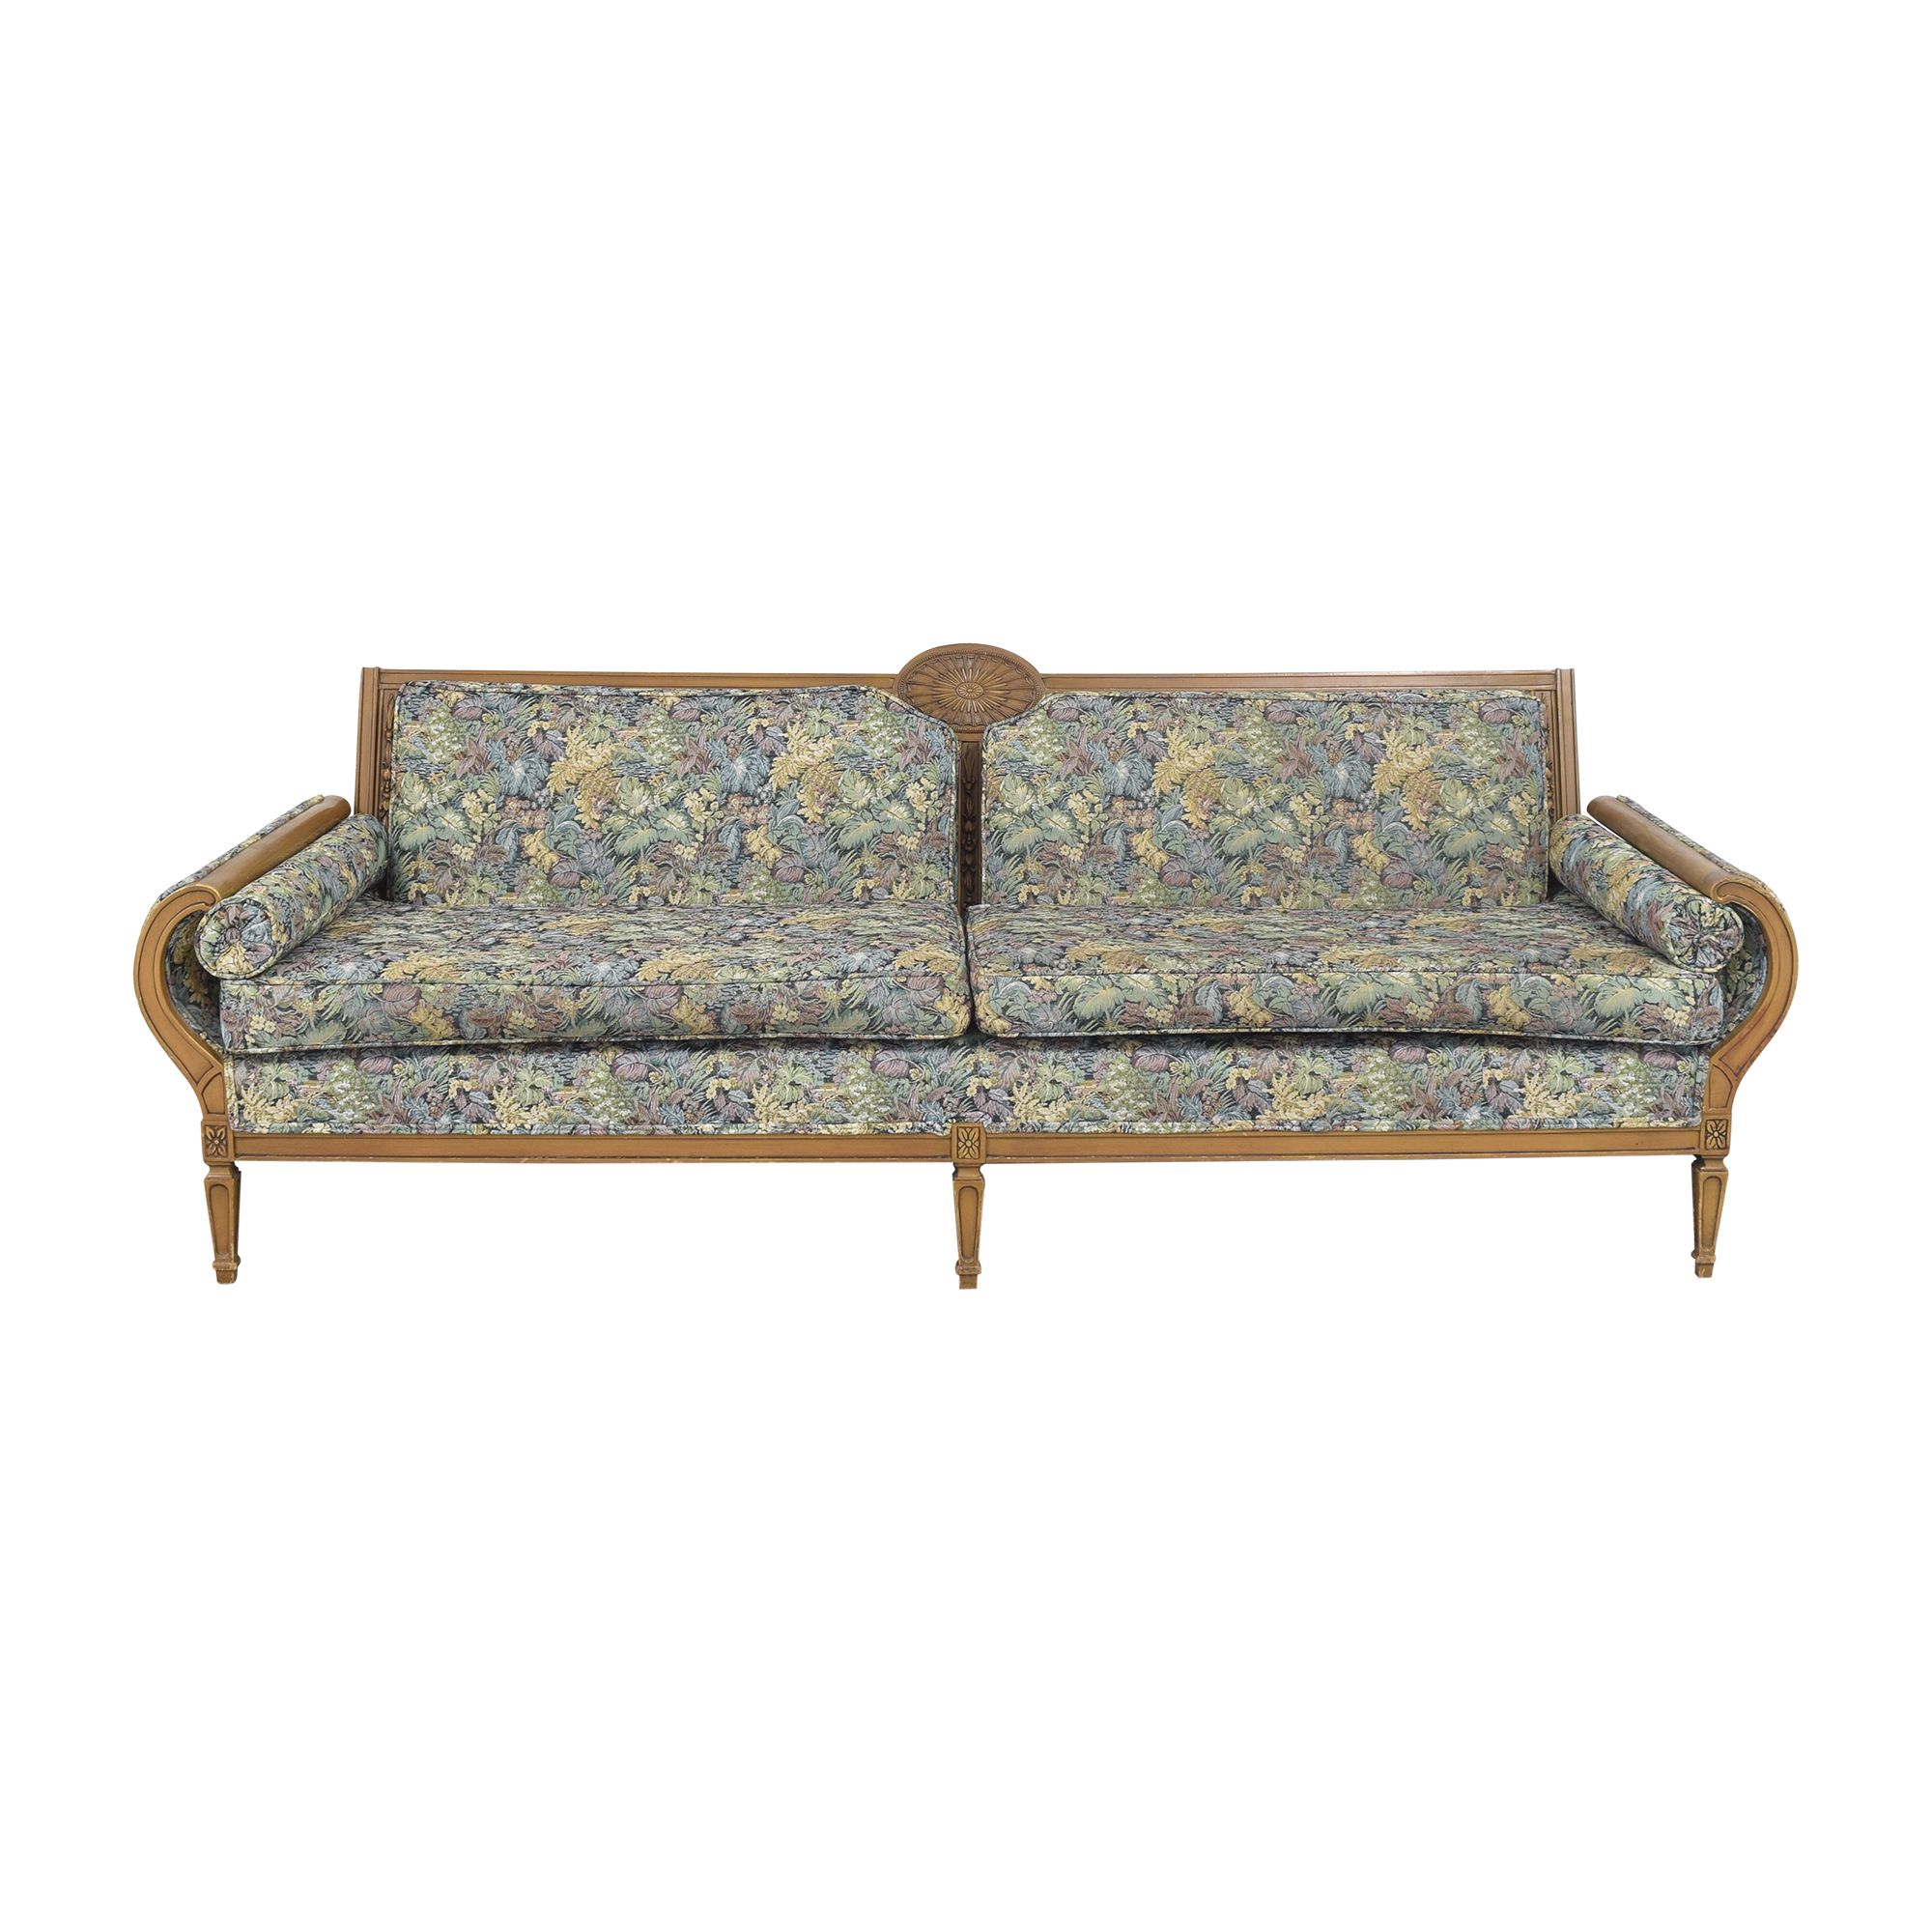 Roma Furniture Roma Furniture Leaf Patterned Sofa dimensions